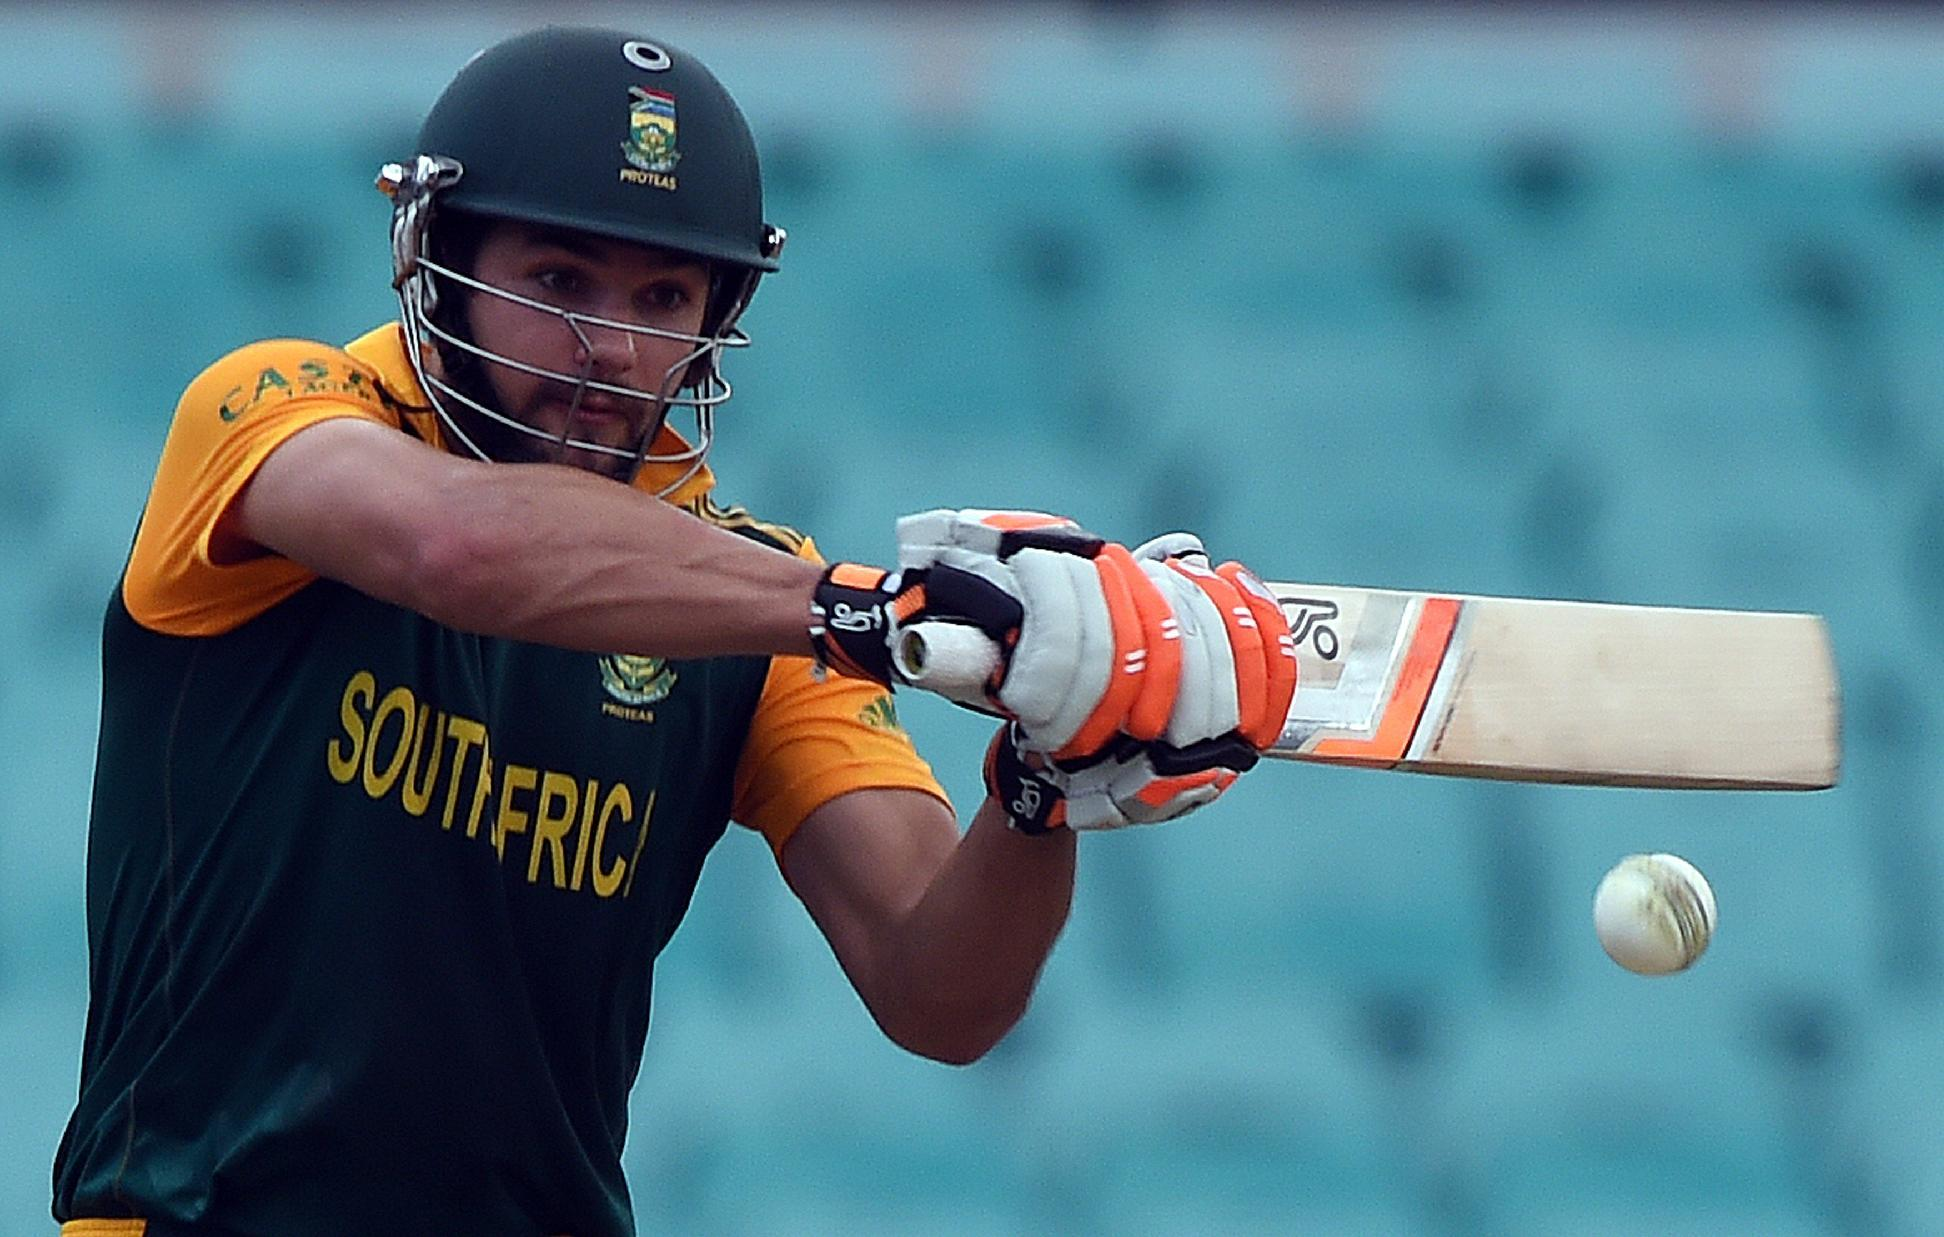 South Africa call up new boy Rossouw